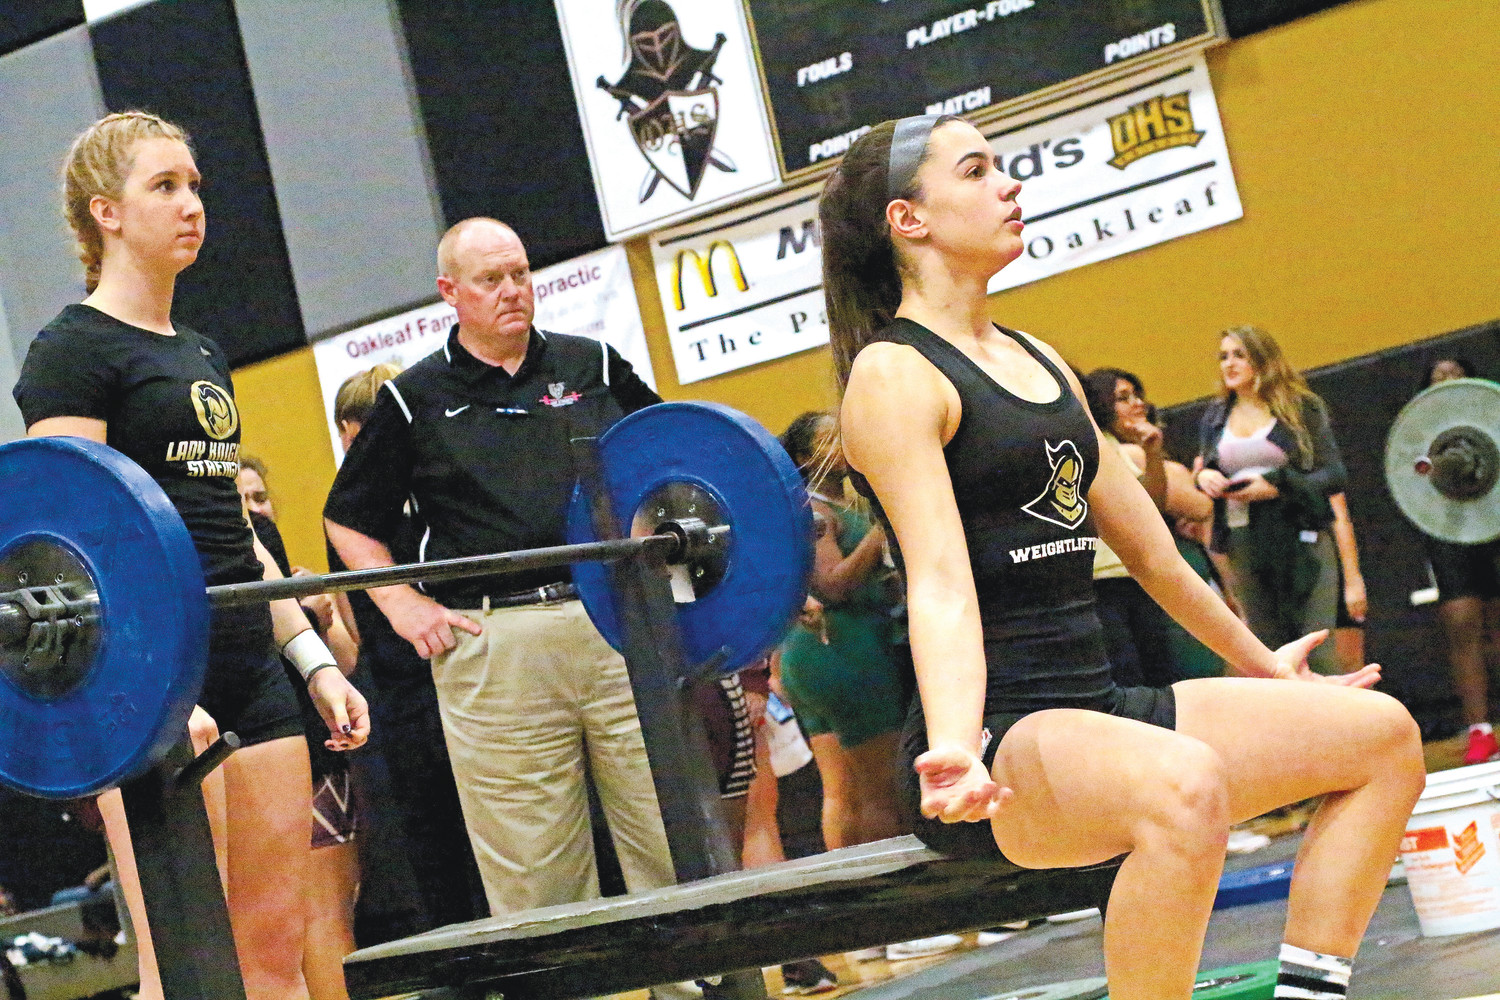 Oakleaf High senior weightlifter Lexi Perez readiers for bench press at district meet two weeks ago, Perez is second ranked at 154 for state meet scheduled Feb. 2-3 in Panama City.